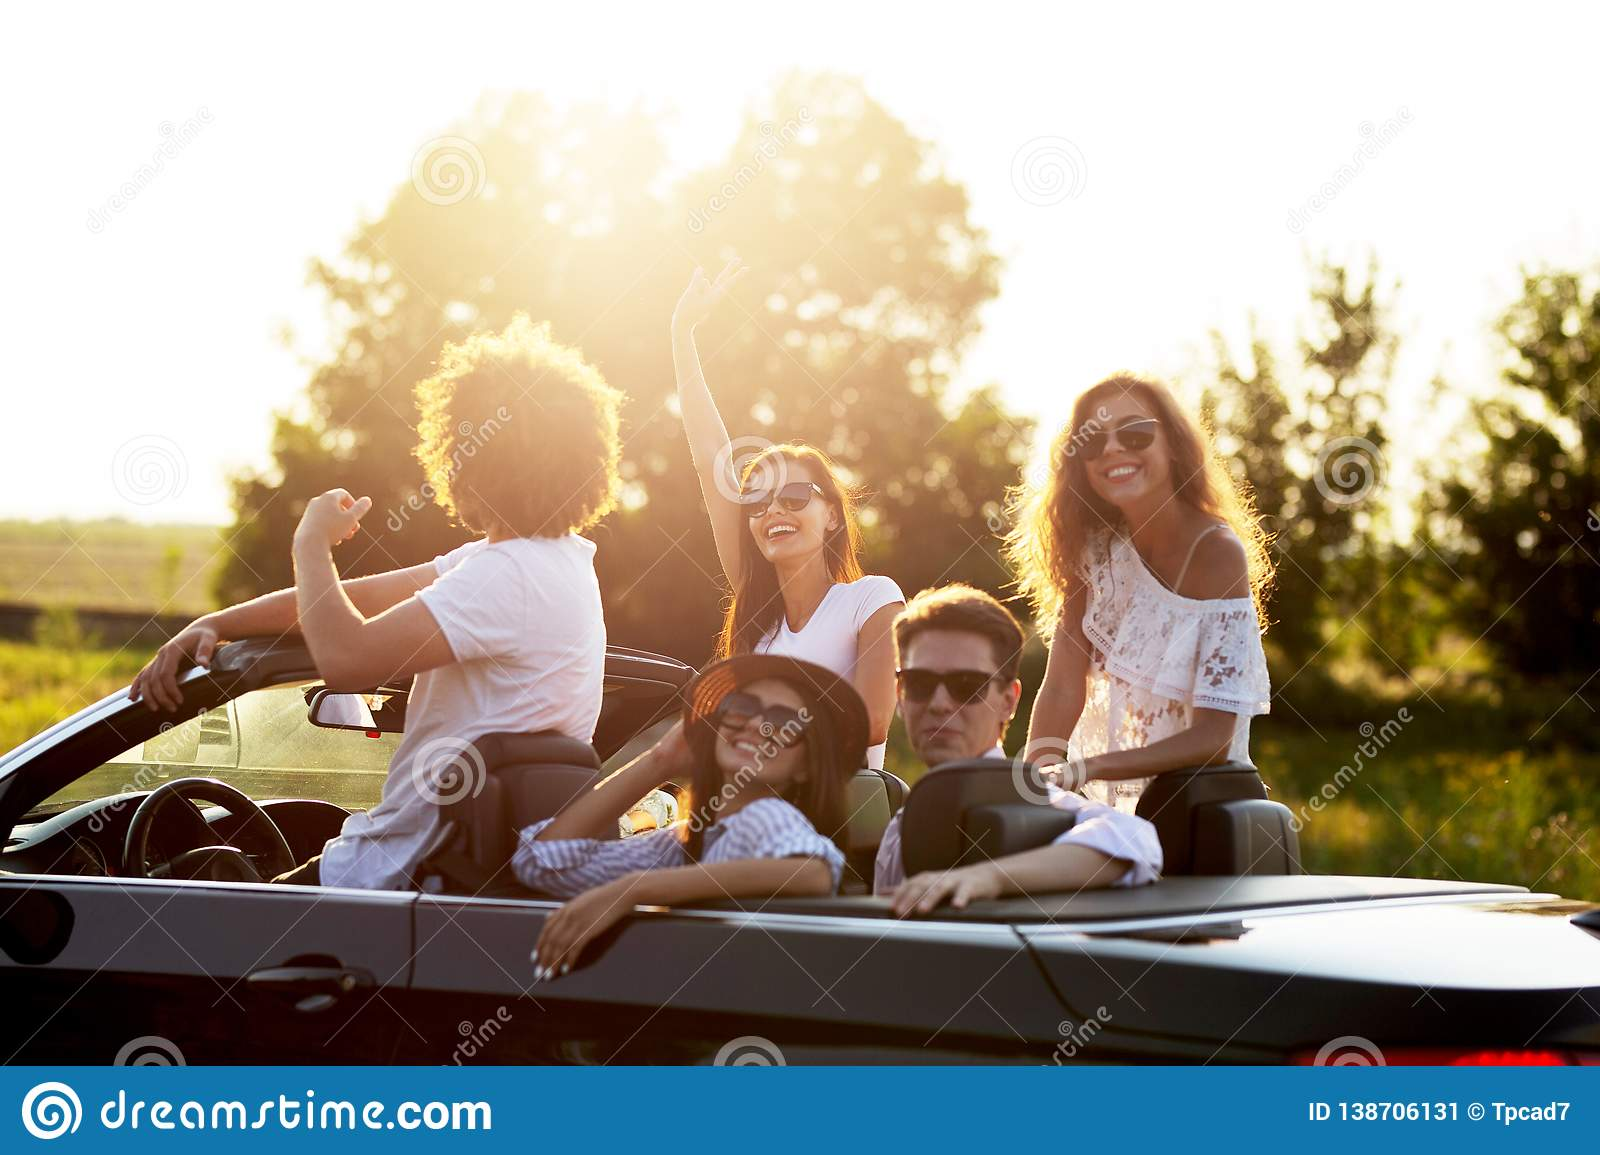 Beautiful stylish young girls and guys in sunglasses are sitting and laughing in a black cabriolet on a sunny day.